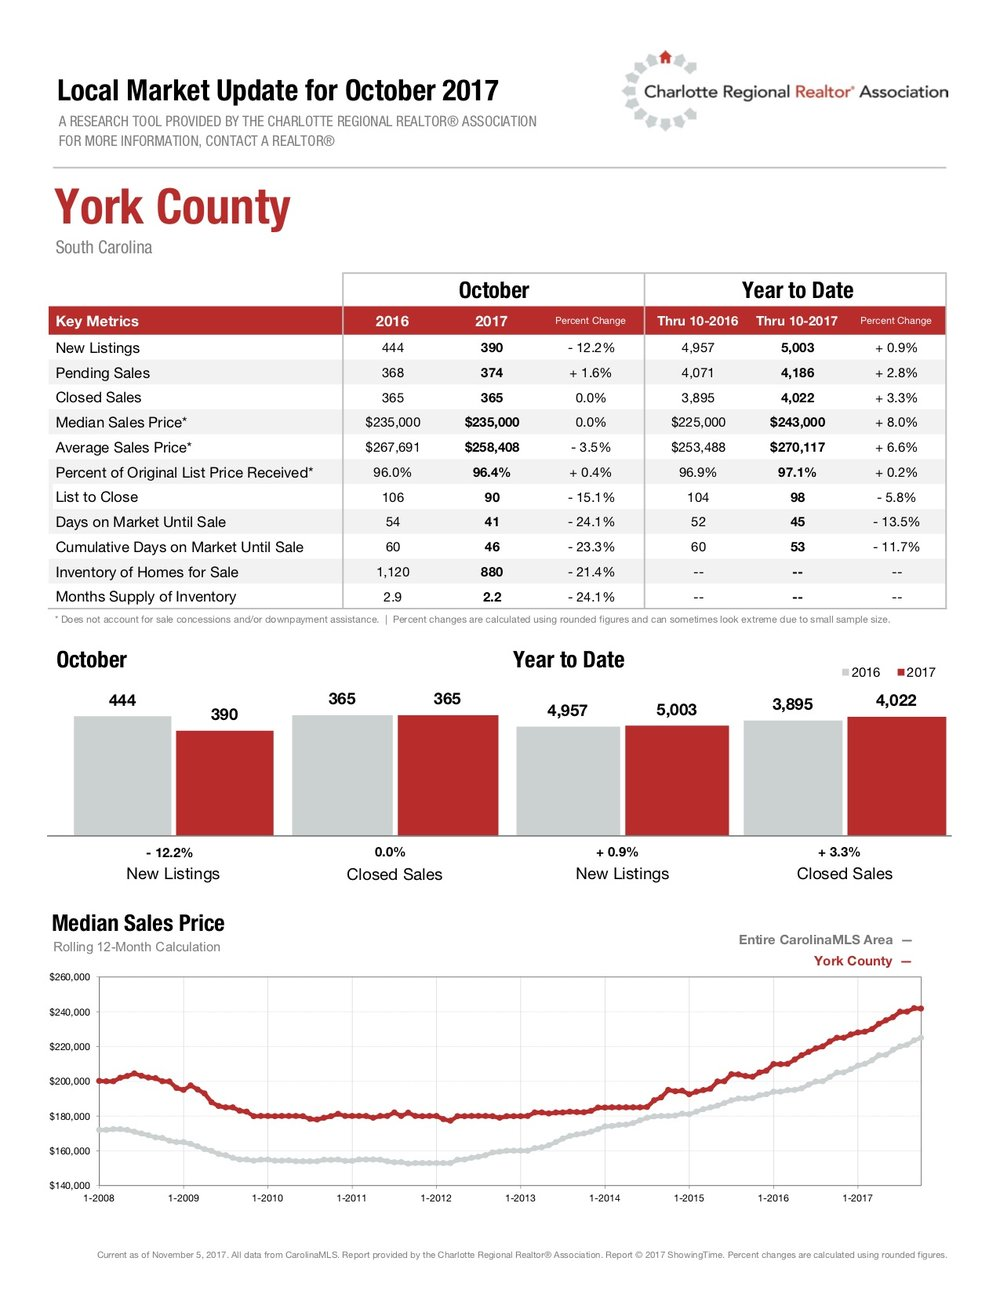 York County Local Market Updates for October 2017